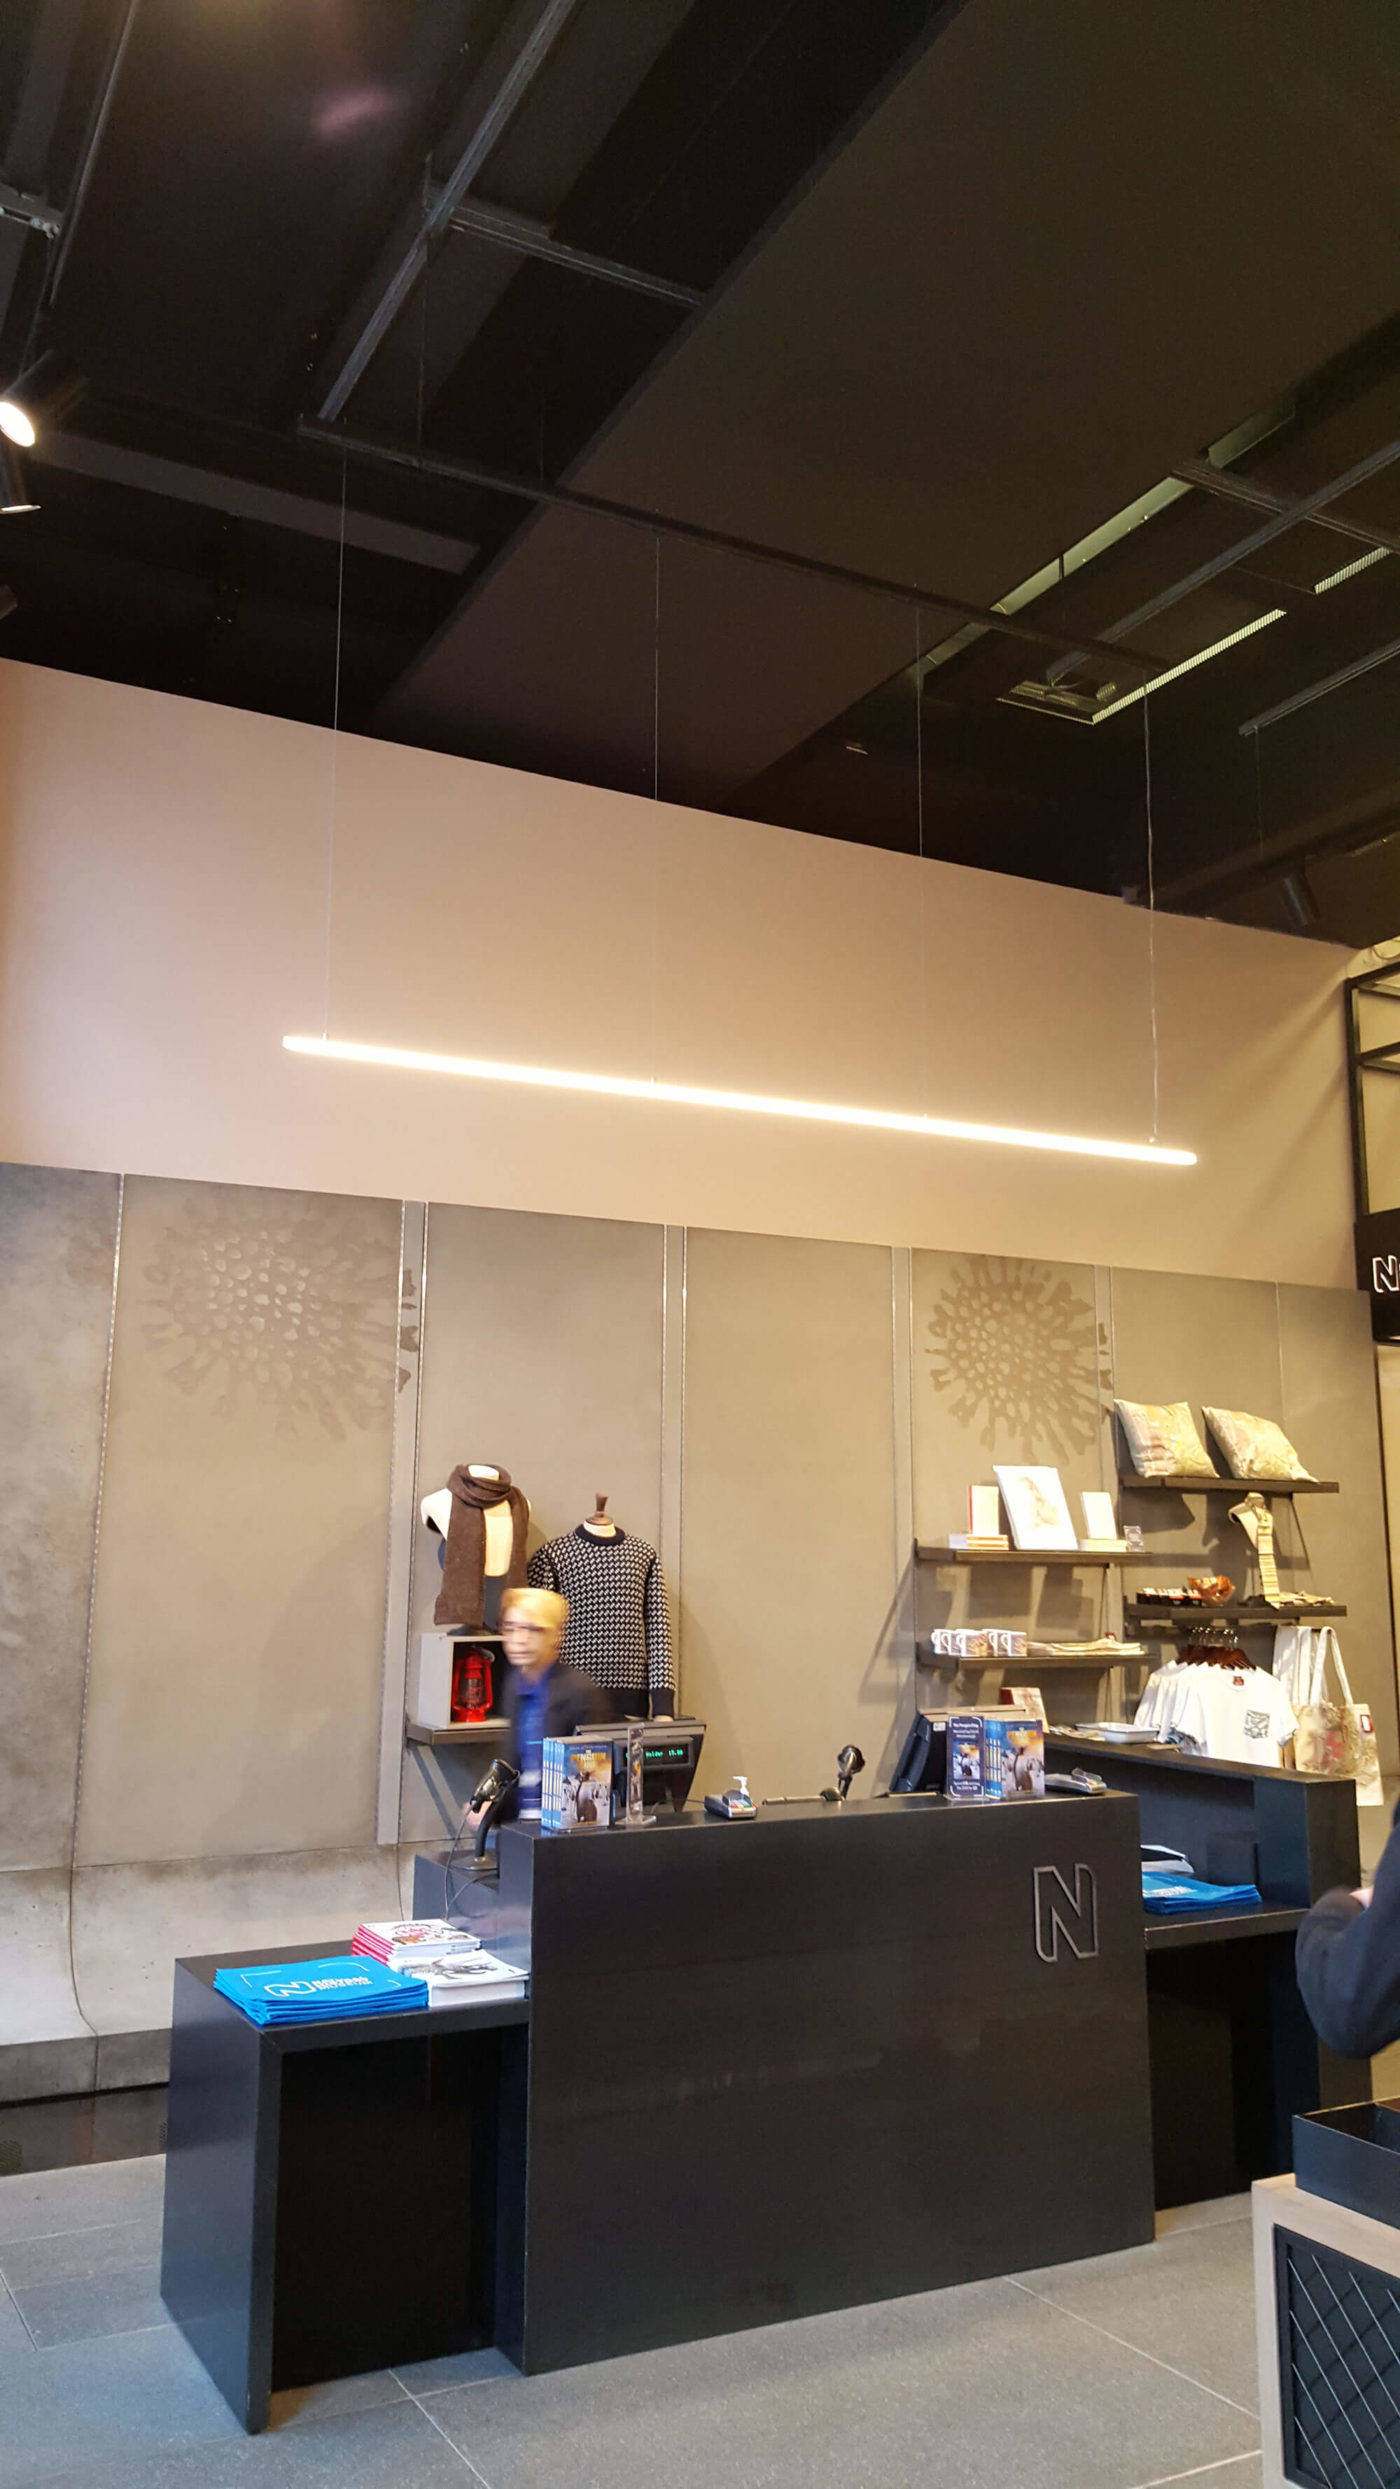 retail-shop-national-history-museum-london-2-mjlighting